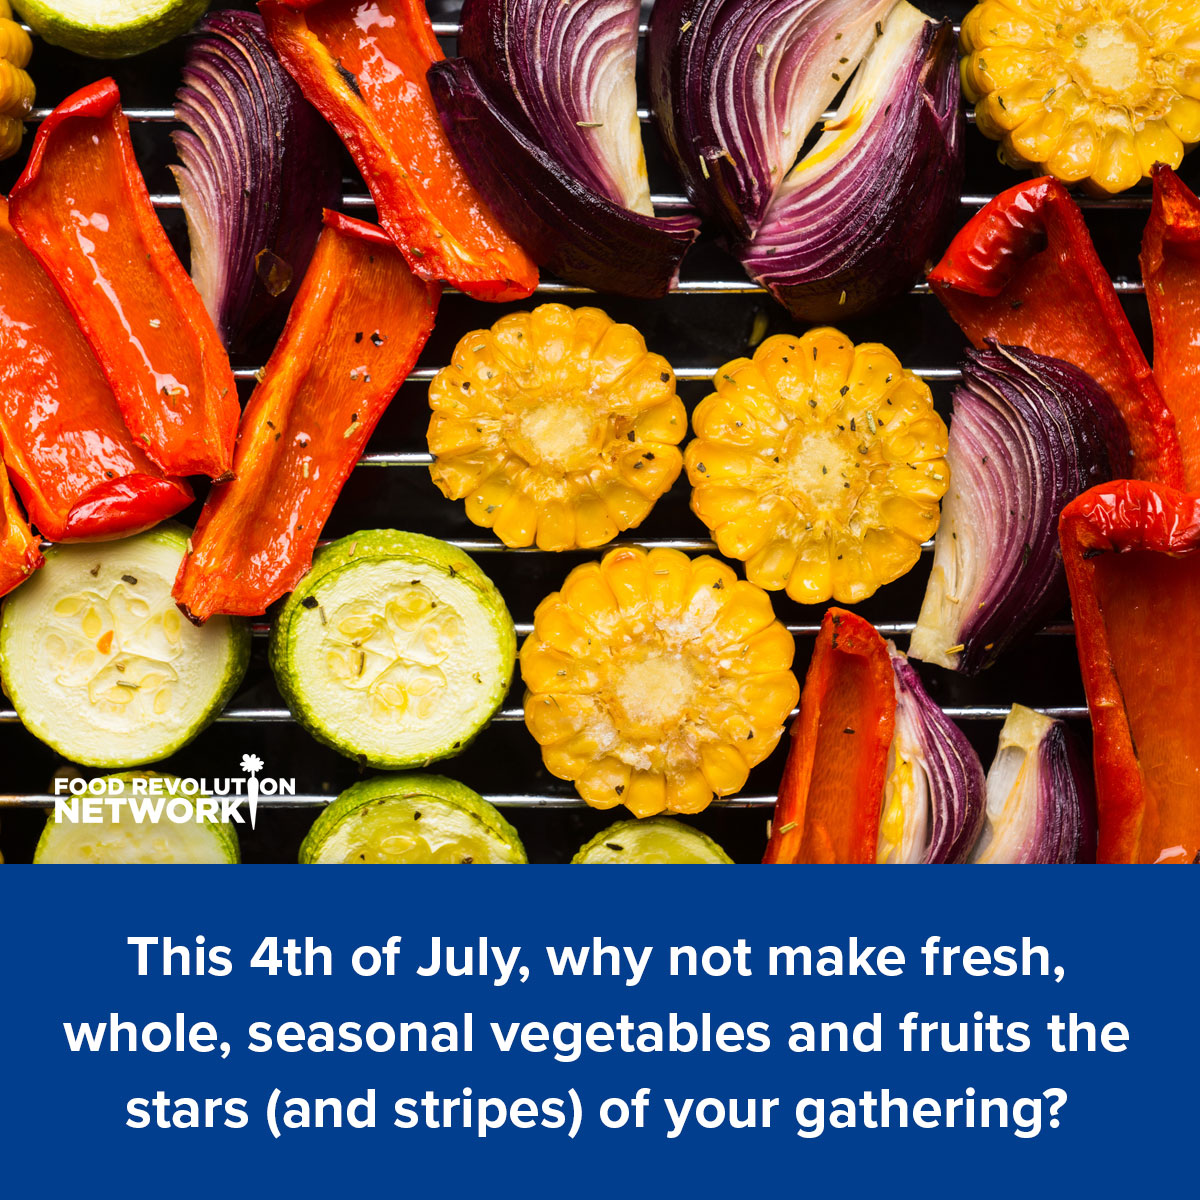 This 4th of July, why not make fresh, whole, seasonal vegetables and fruits the stars (and stripes) of your gathering?